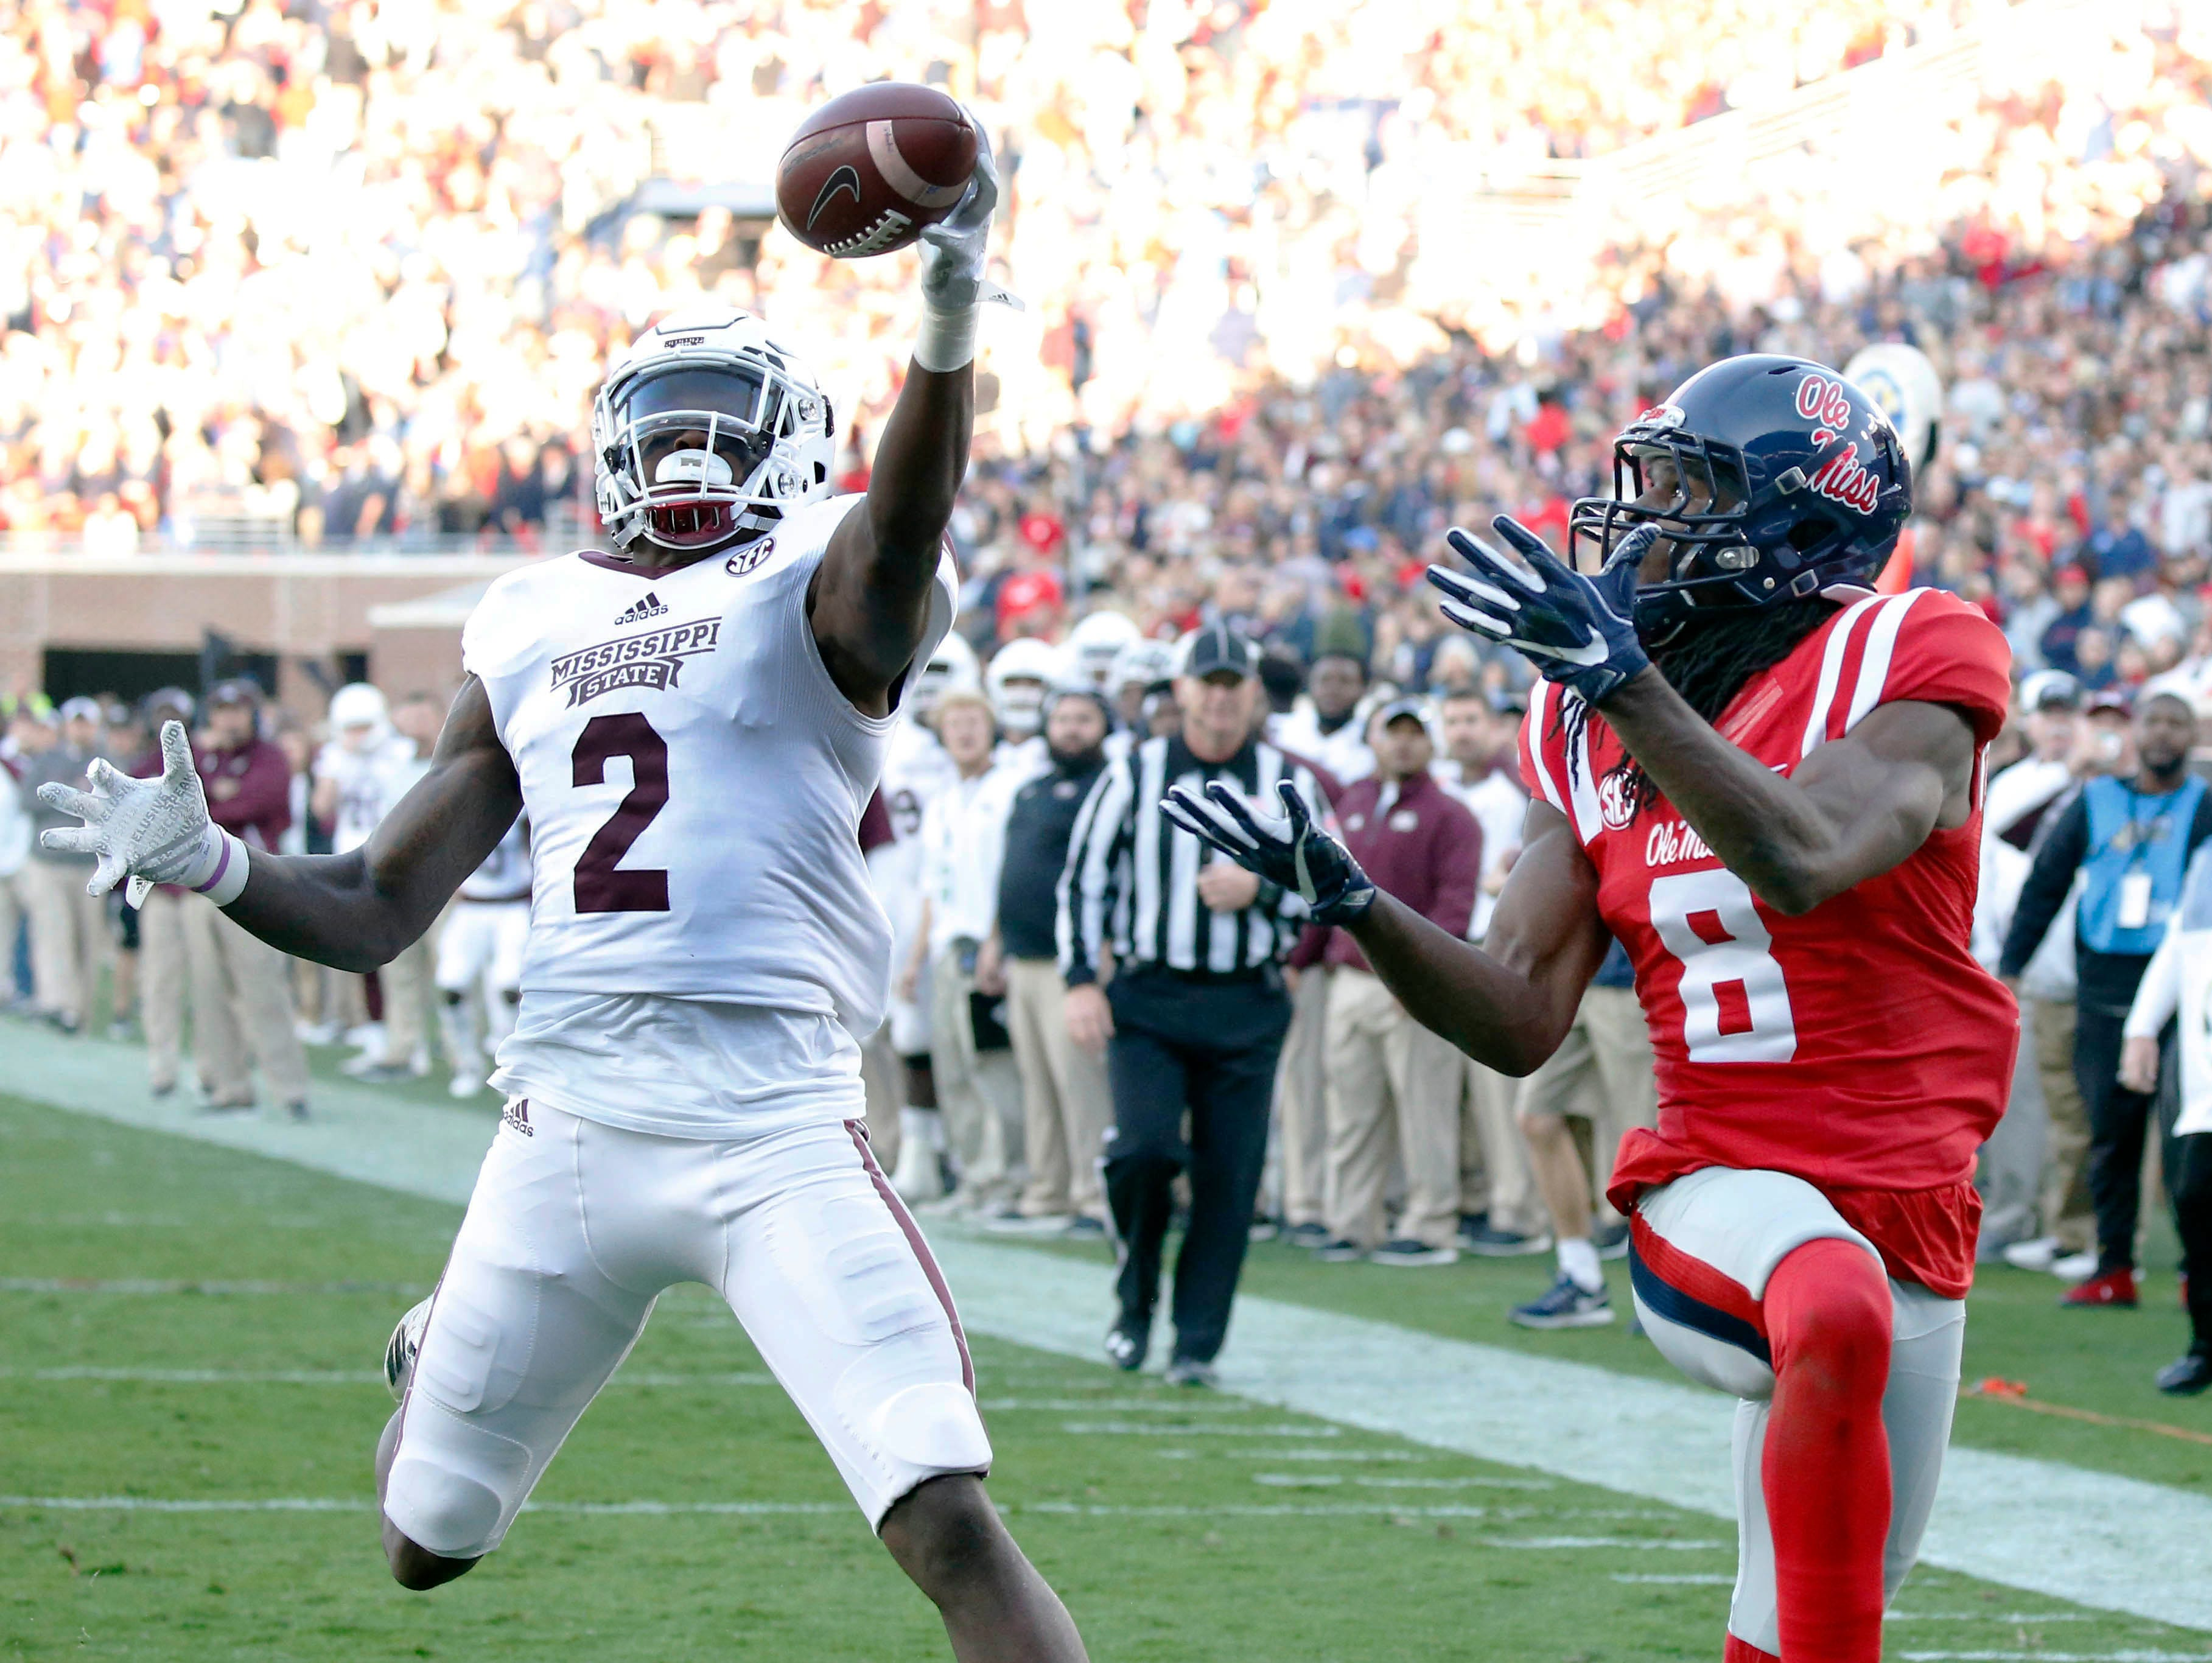 Mississippi State defensive back Jamal Peters (2) reaches up and intercepts a pass intended for Mississippi wide receiver Quincy Adeboyejo (8) in the end zone in the first half of the Egg Bowl Saturday in Oxford.